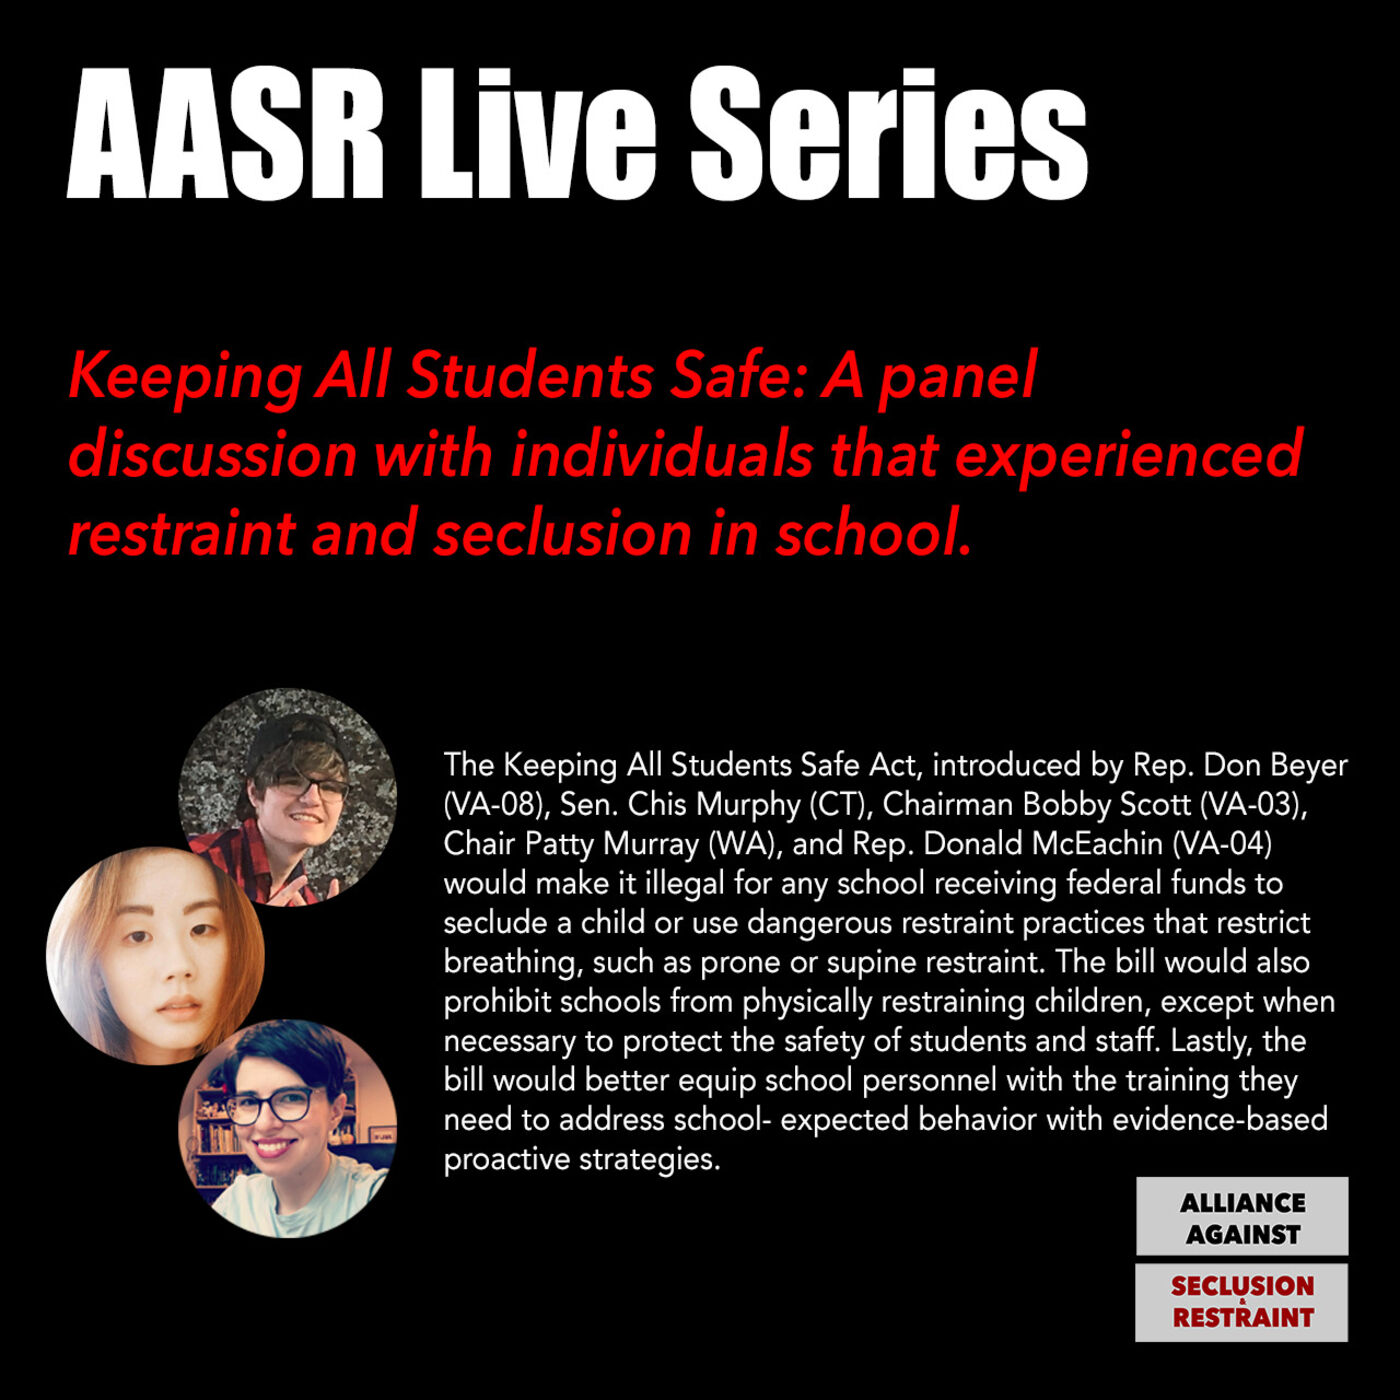 Keeping All Students Safe: Panel discussion w/ individuals that experienced restraint & seclusion